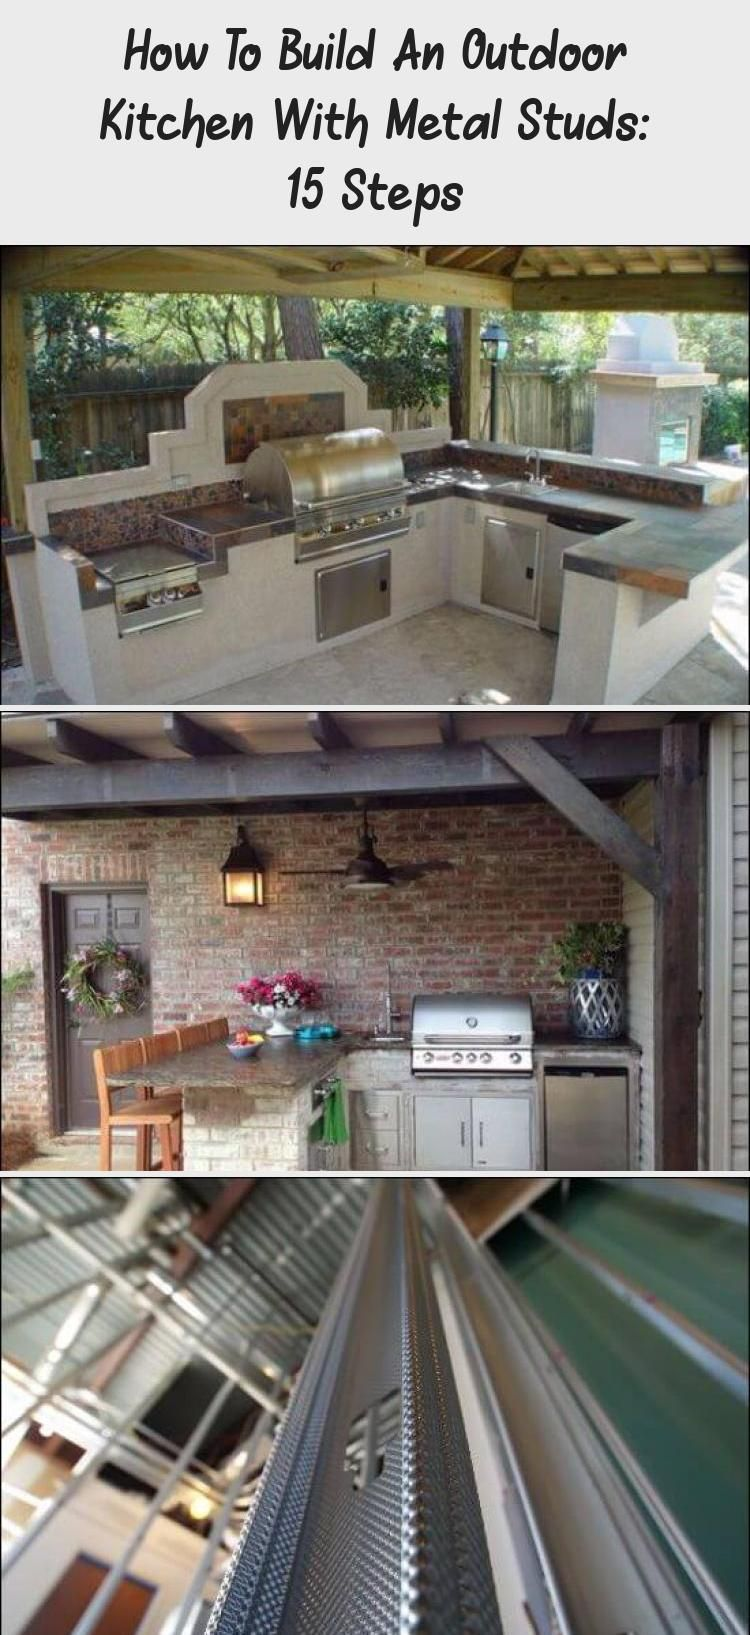 How To Build An Outdoor Kitchen With Metal Studs 15 Steps Build Outdoor Kitchen Outdoor Decor Plumbing Installation